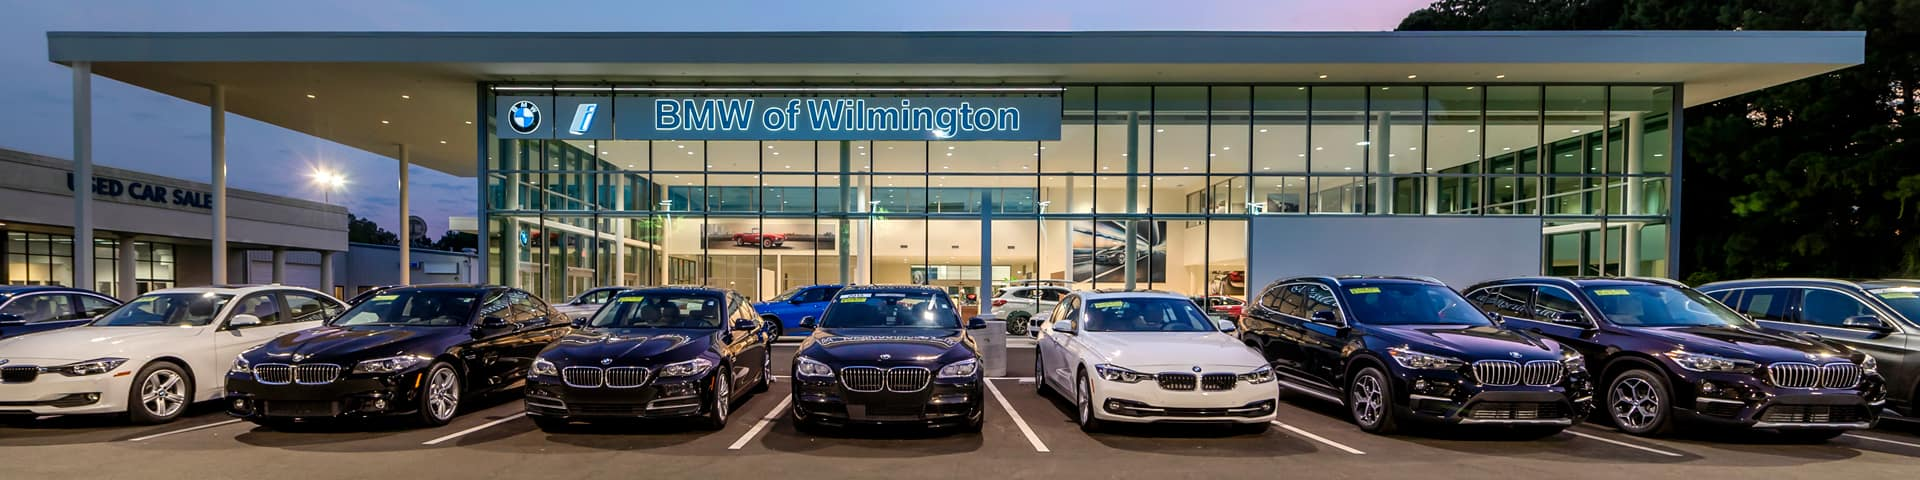 BMW Wilmington Nc >> Baker Motor Company Pre Owned Center Wilmington Baker